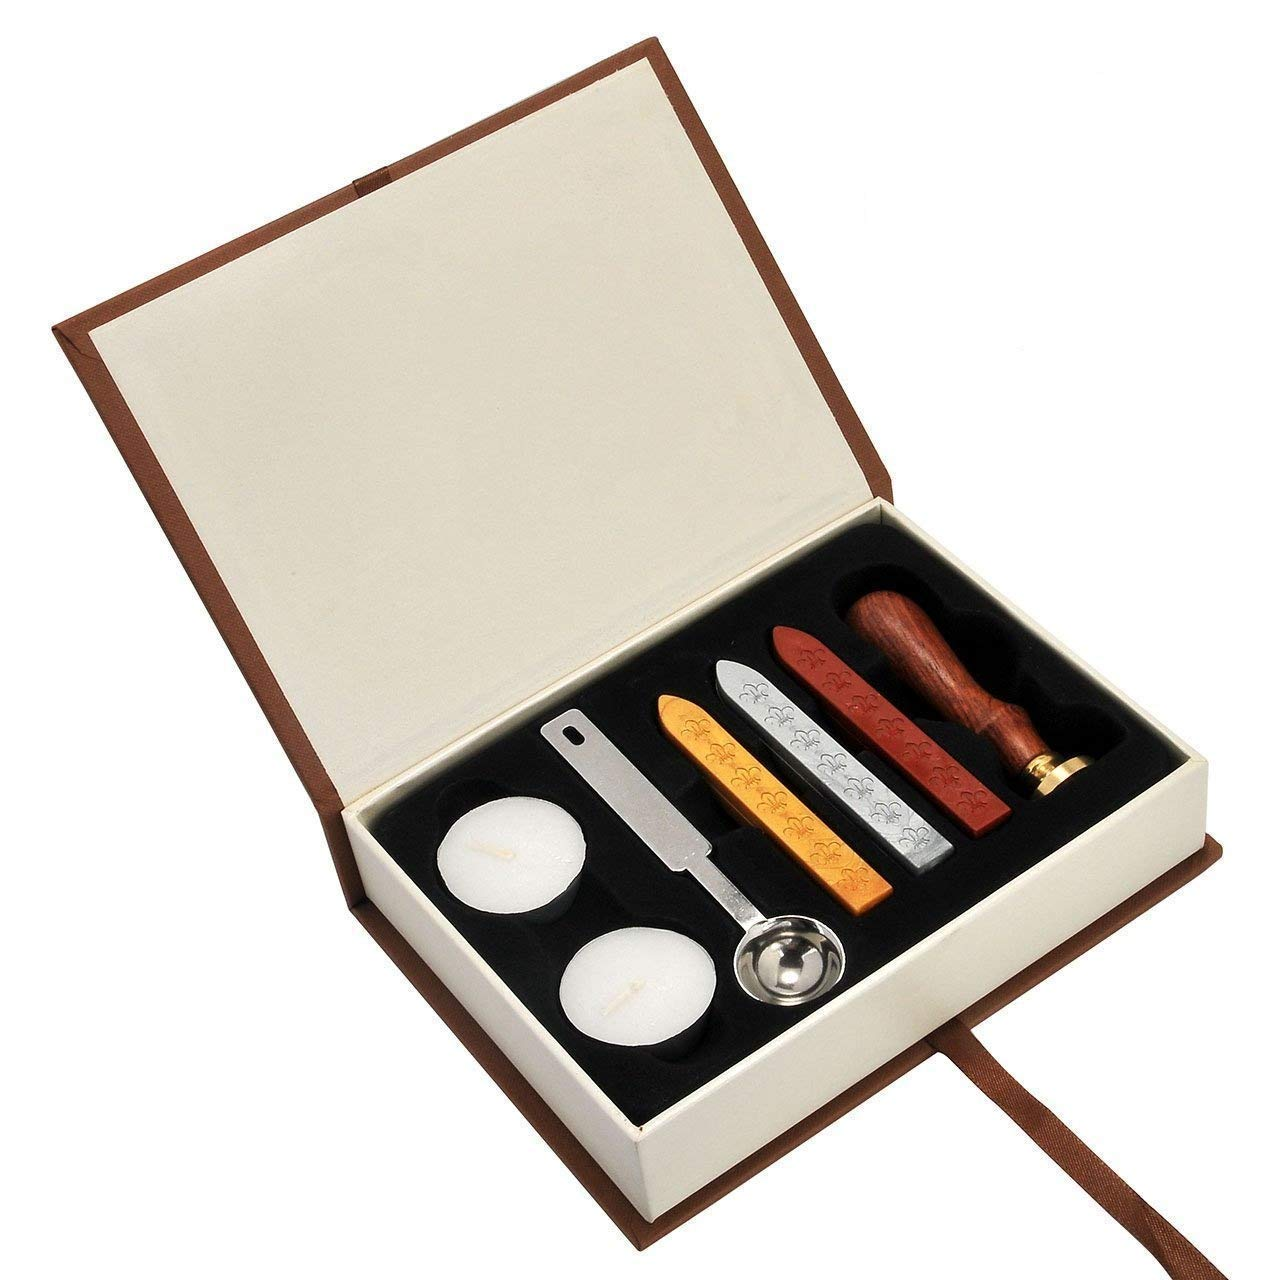 Arts & Crafts New Vintage Harry Potter Hogwarts School Badge Wax Seal Stamp Kit Ministry of - Red, Gold, Gray Wax Sticks with Tea Candles and Spoon- Great Gift Idea for a Friend Or Movie Lover Belovelife